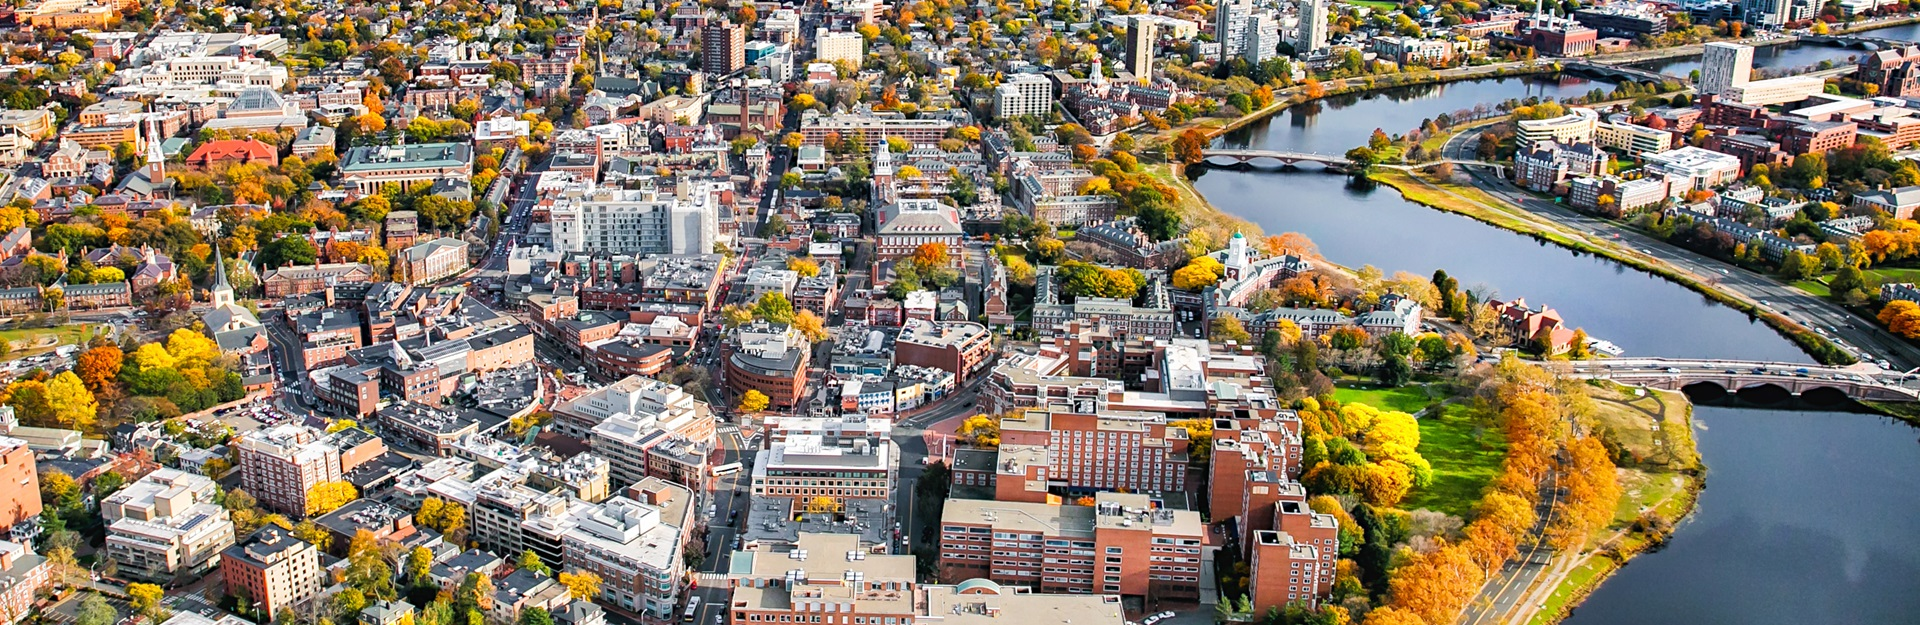 Aerial photo of the Harvard Square area